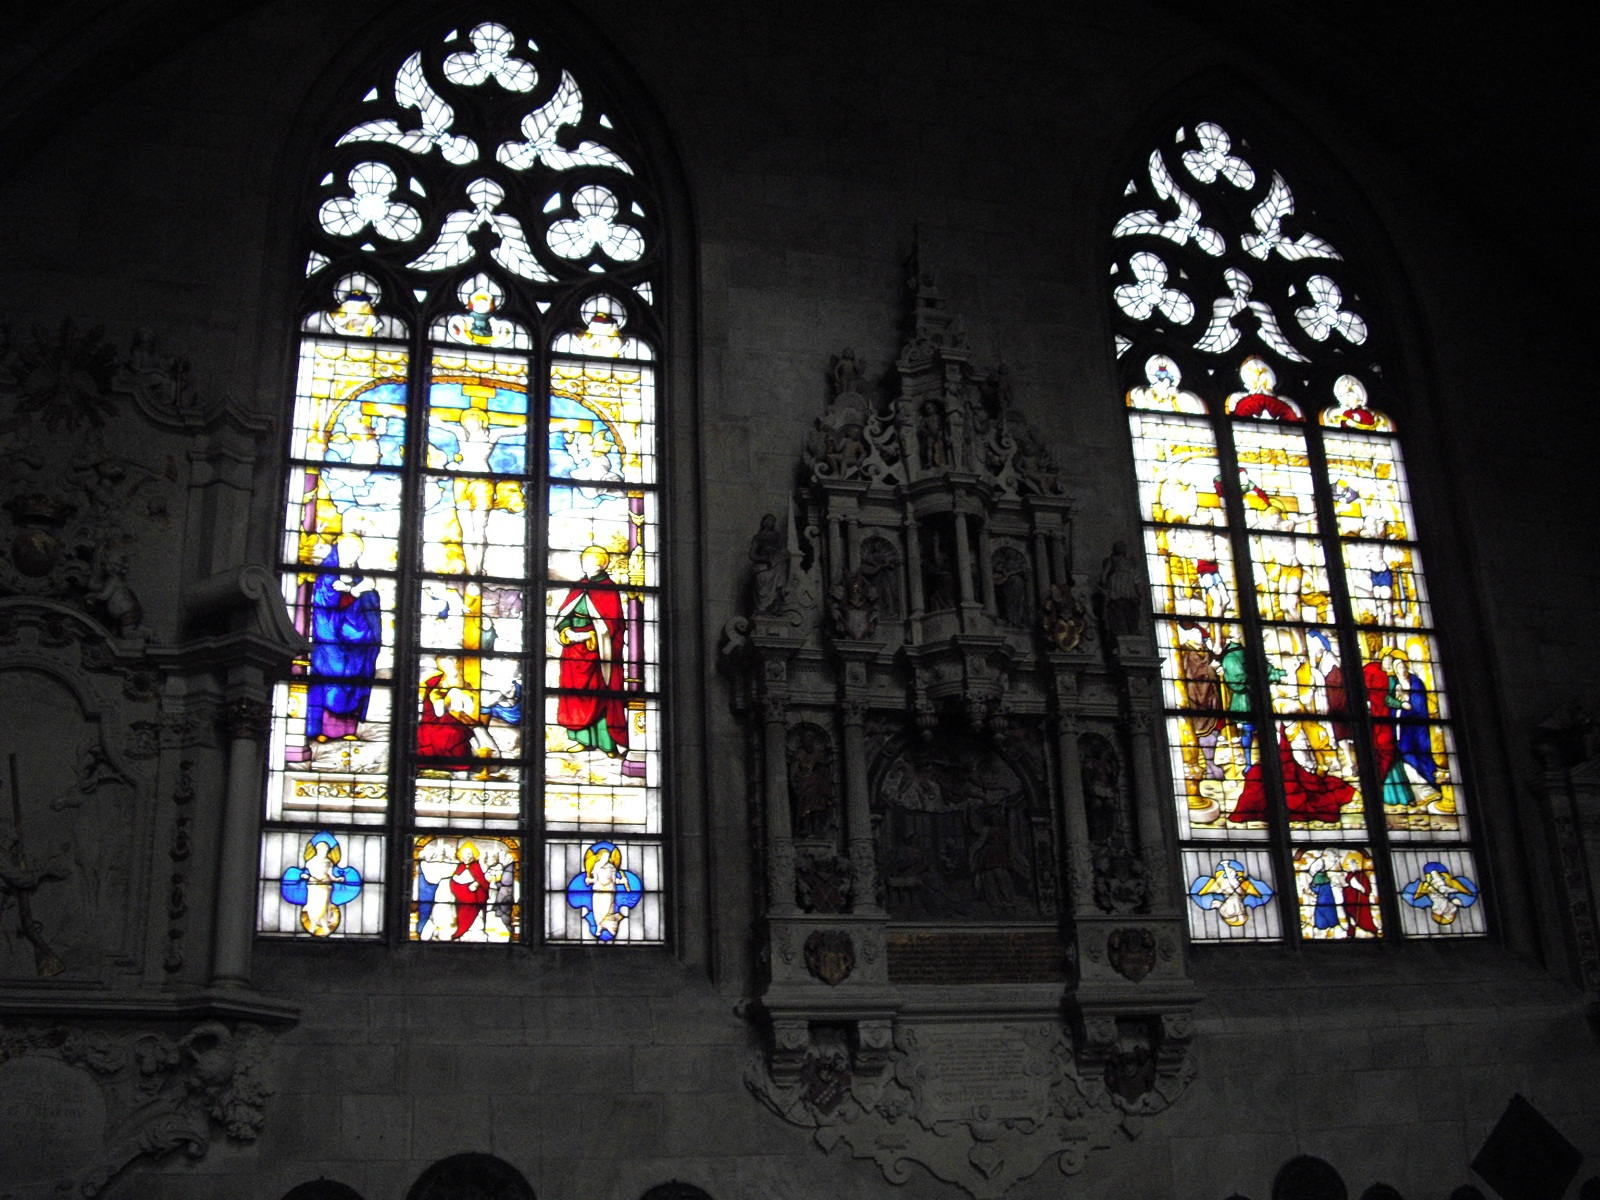 Saint Paulus Dom, Munster, Germany, Stained glass windows